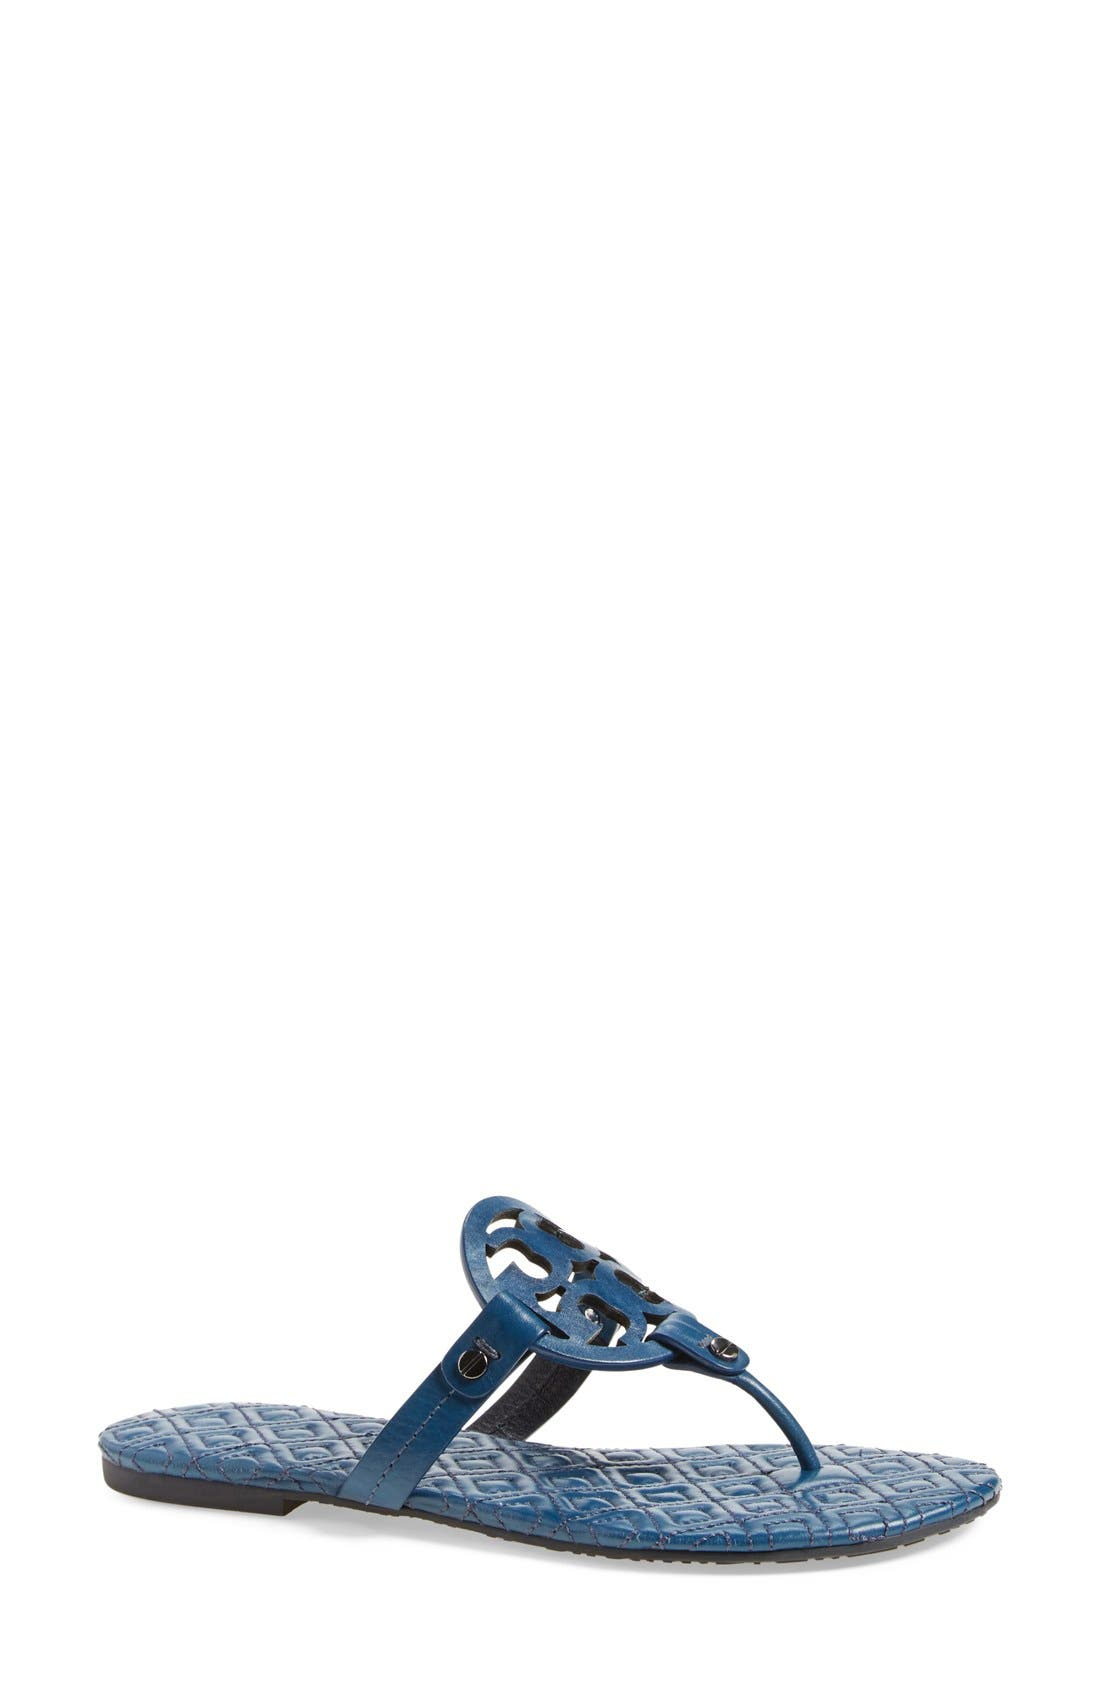 Alternate Image 1 Selected - Tory Burch 'Miller' Quilted Sandal (Women)